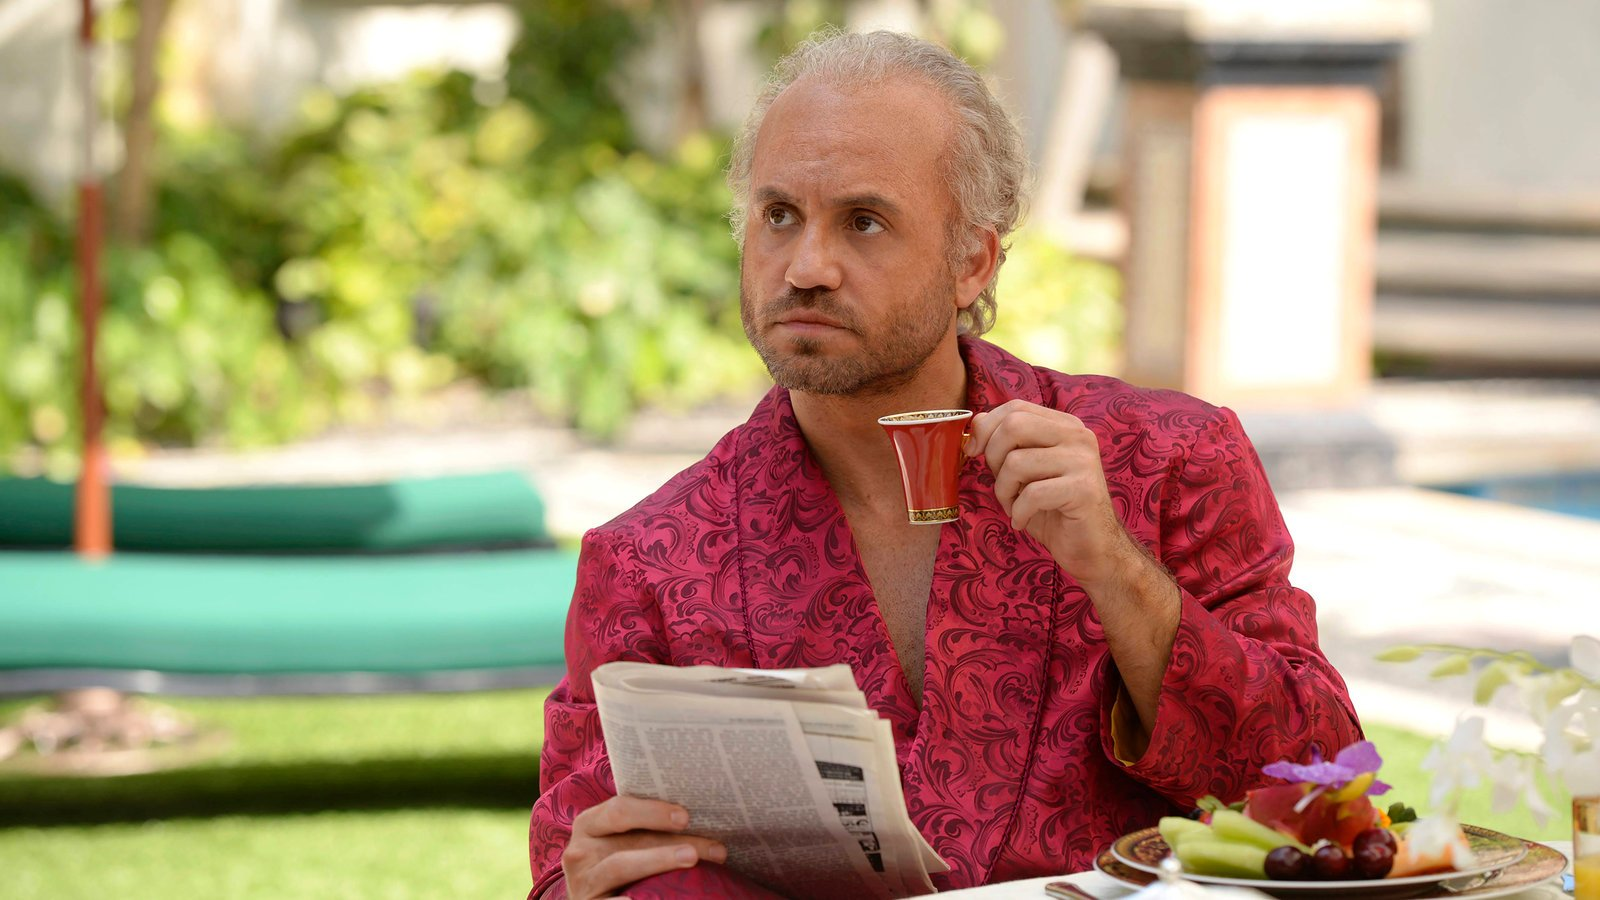 Gianni Versace Has HIV in a New TV Series. What's the Real Story?